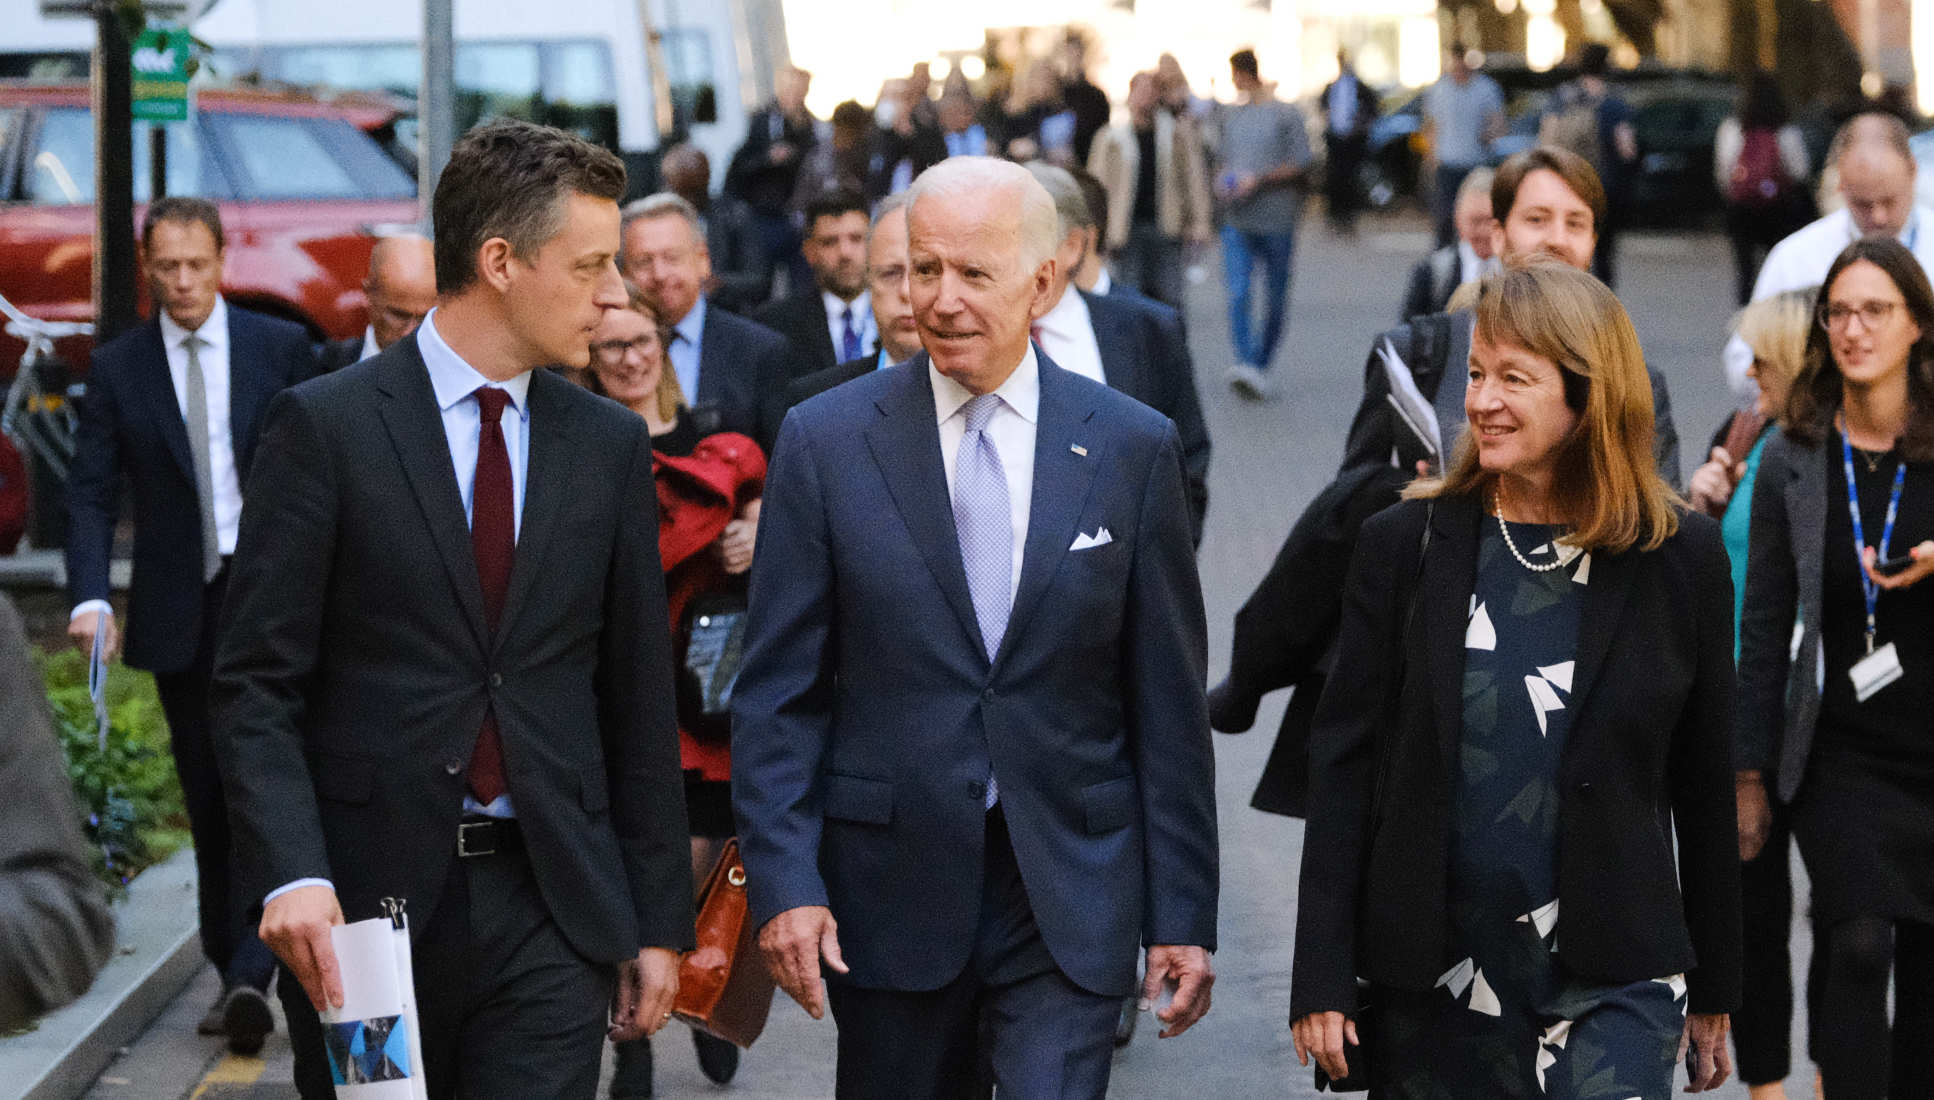 President Gast with Joe biden